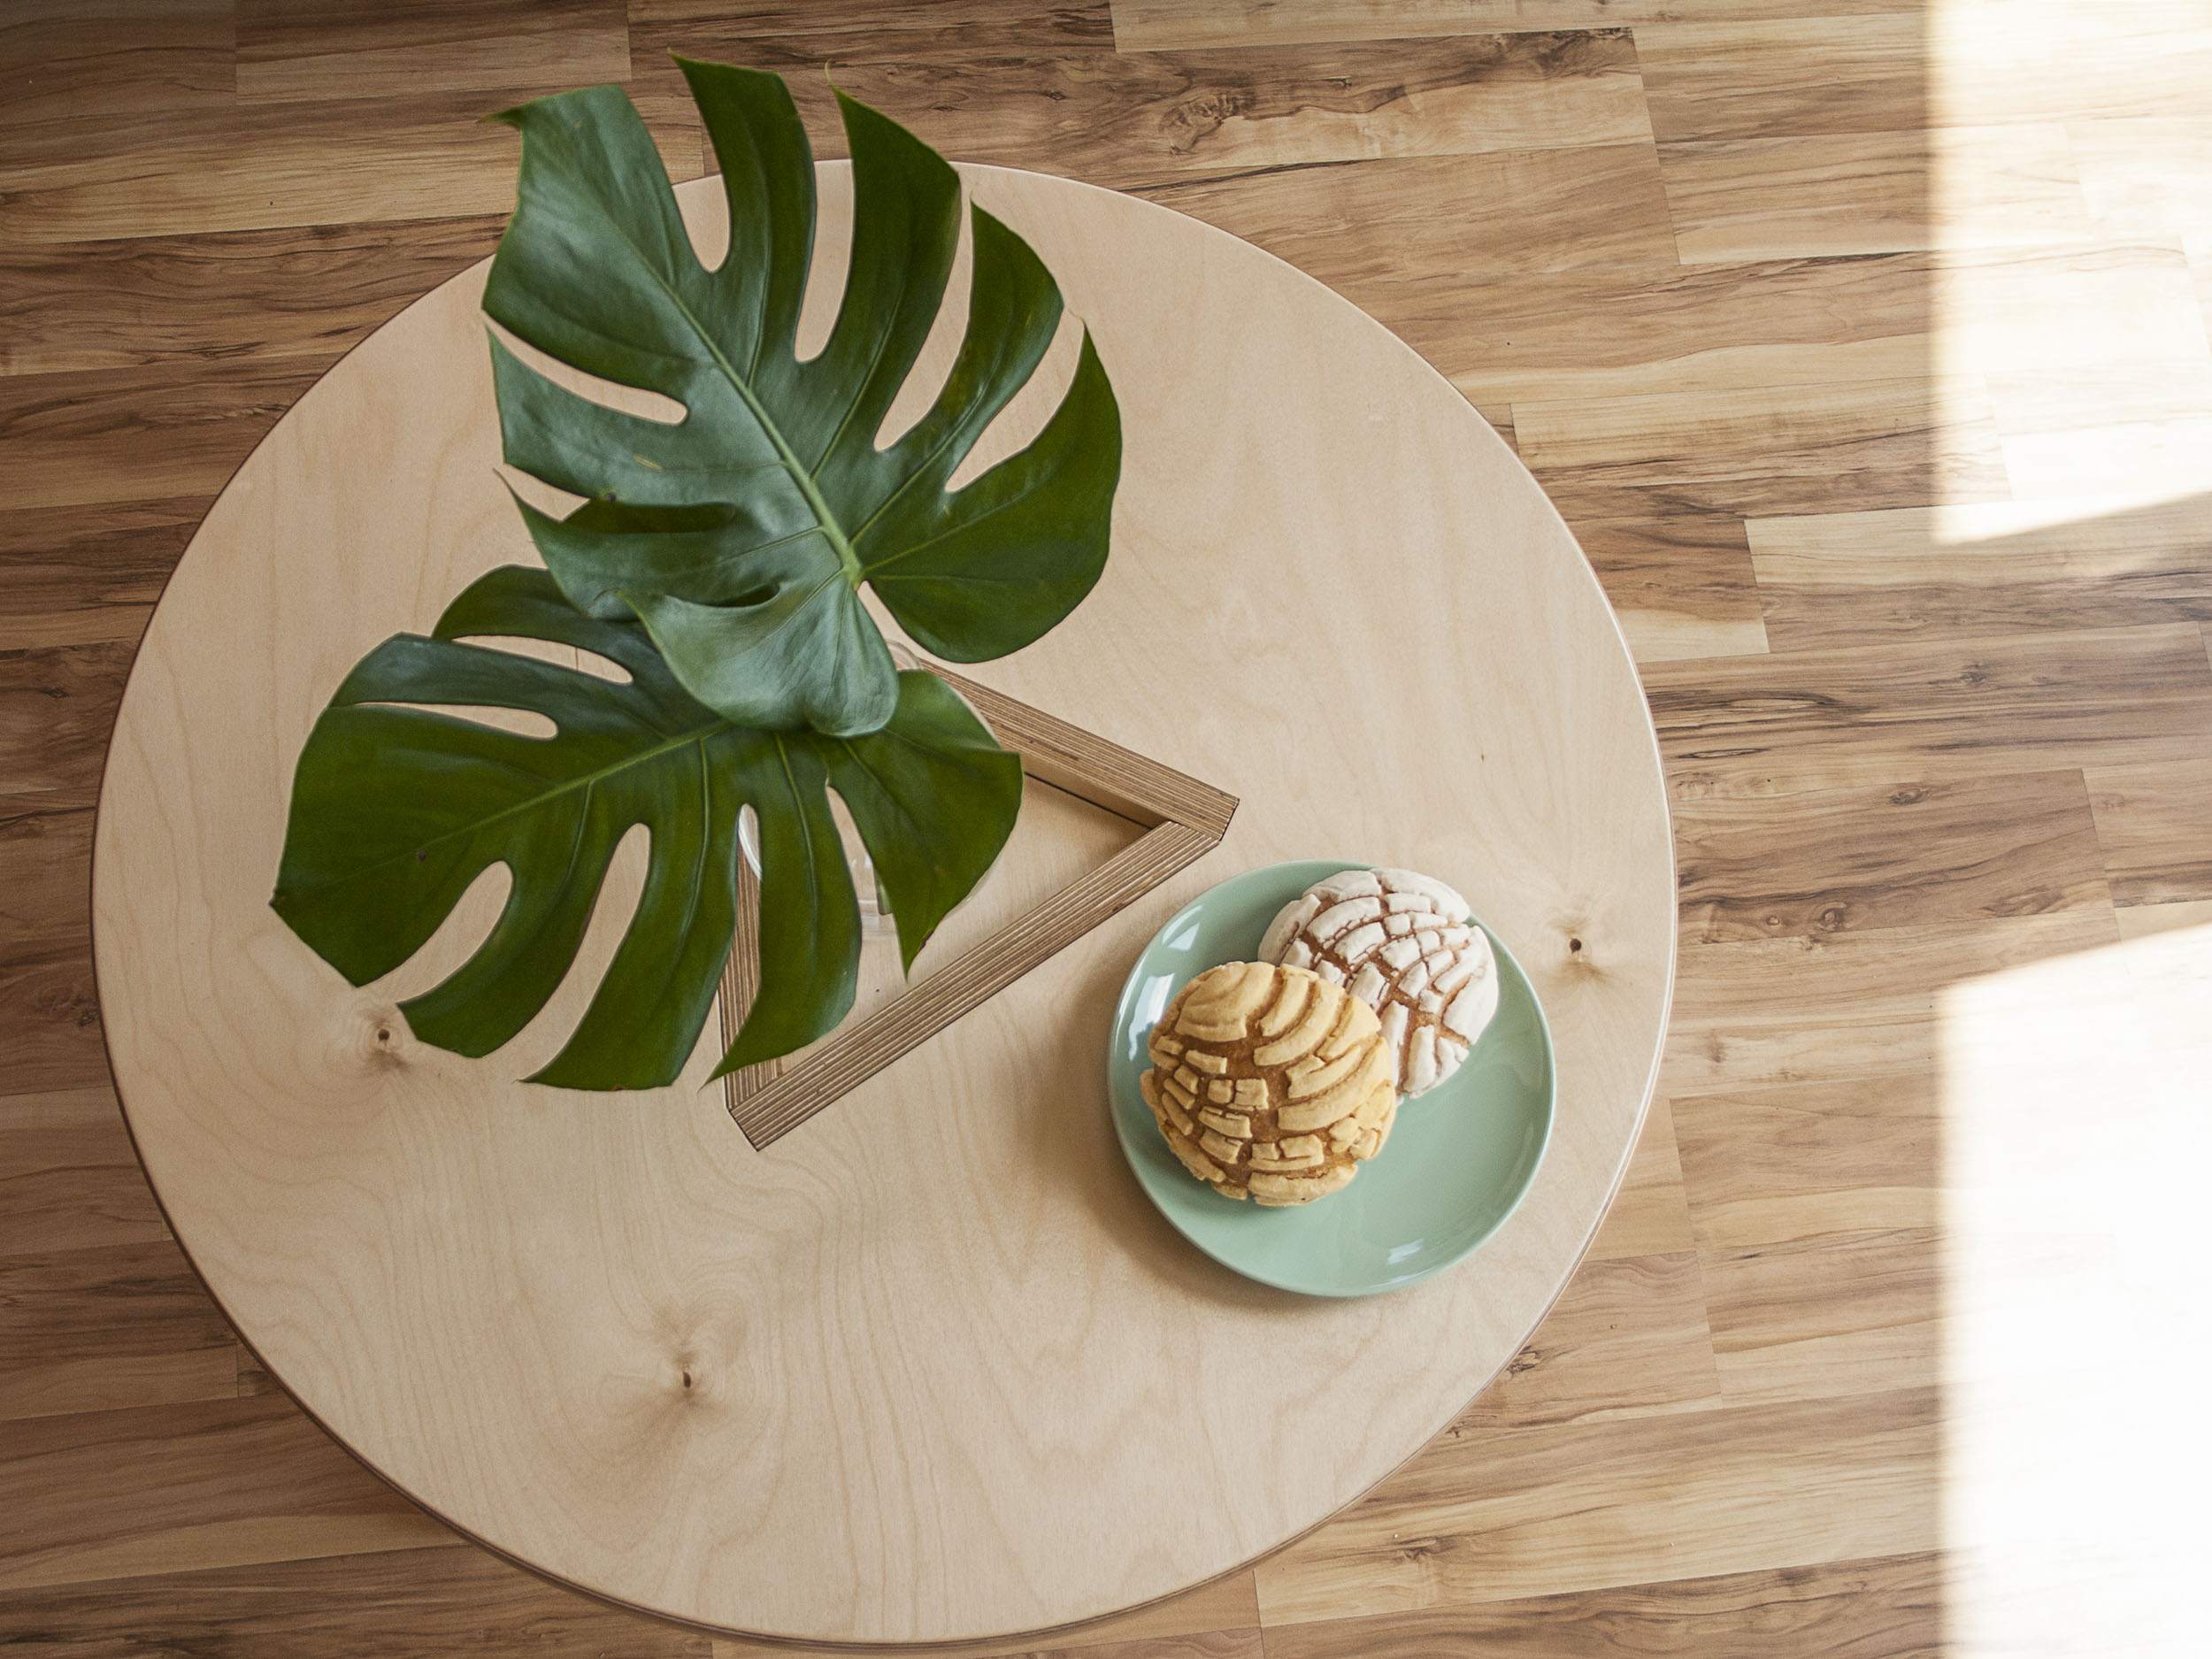 Everything in it's right place. - The BOHDII Coffee Table's clever construction creates a shallow, central,space that can be used to create arrangements of your favorite things.